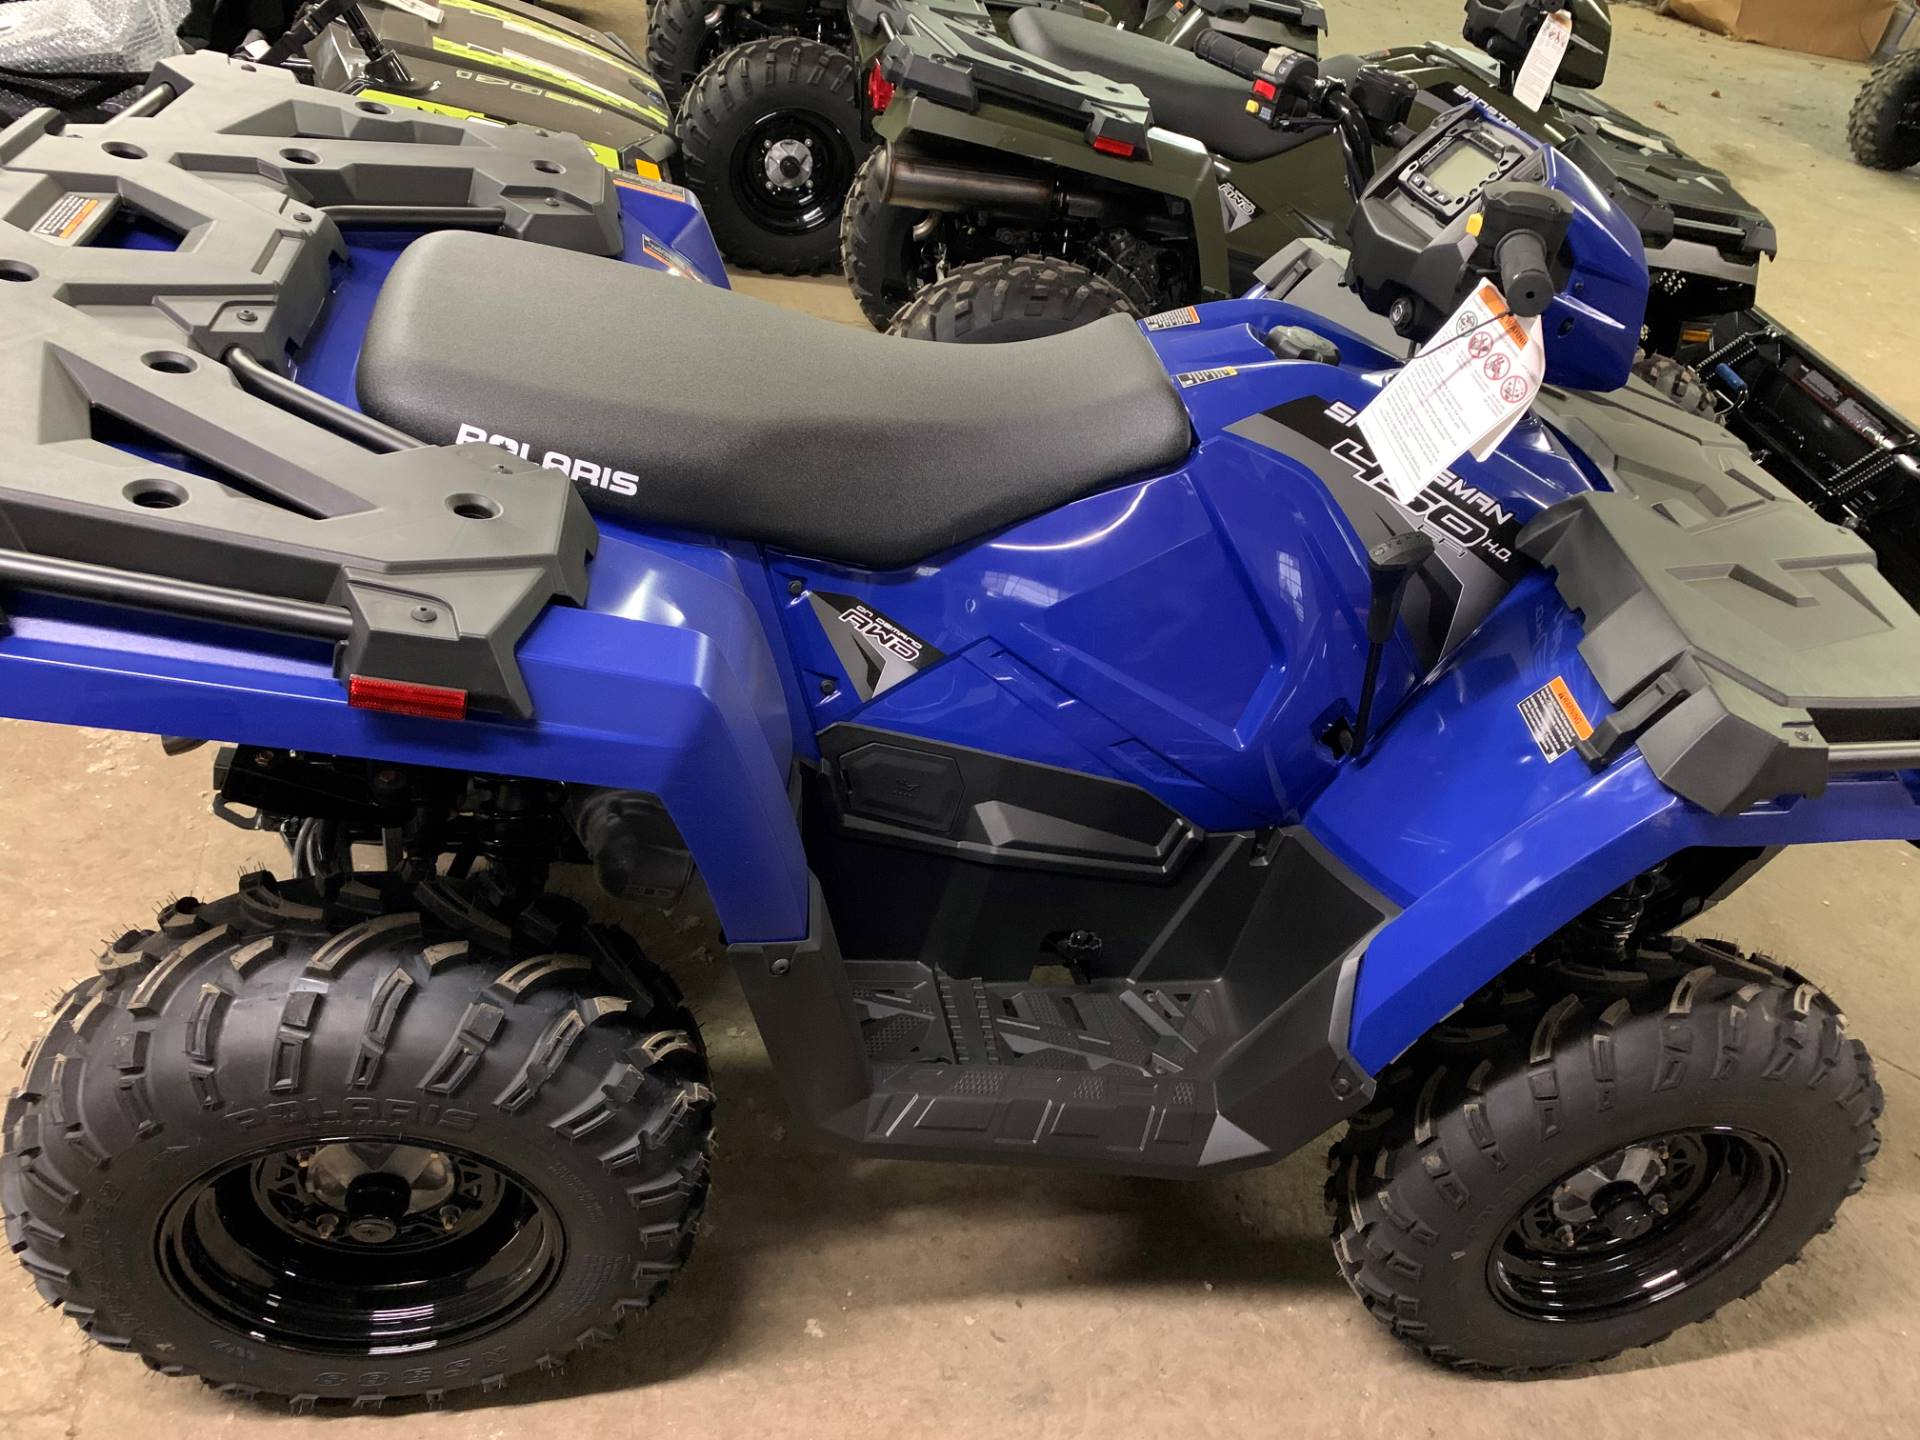 2020 Polaris Sportsman 450 H.O. in Beaver Falls, Pennsylvania - Photo 5